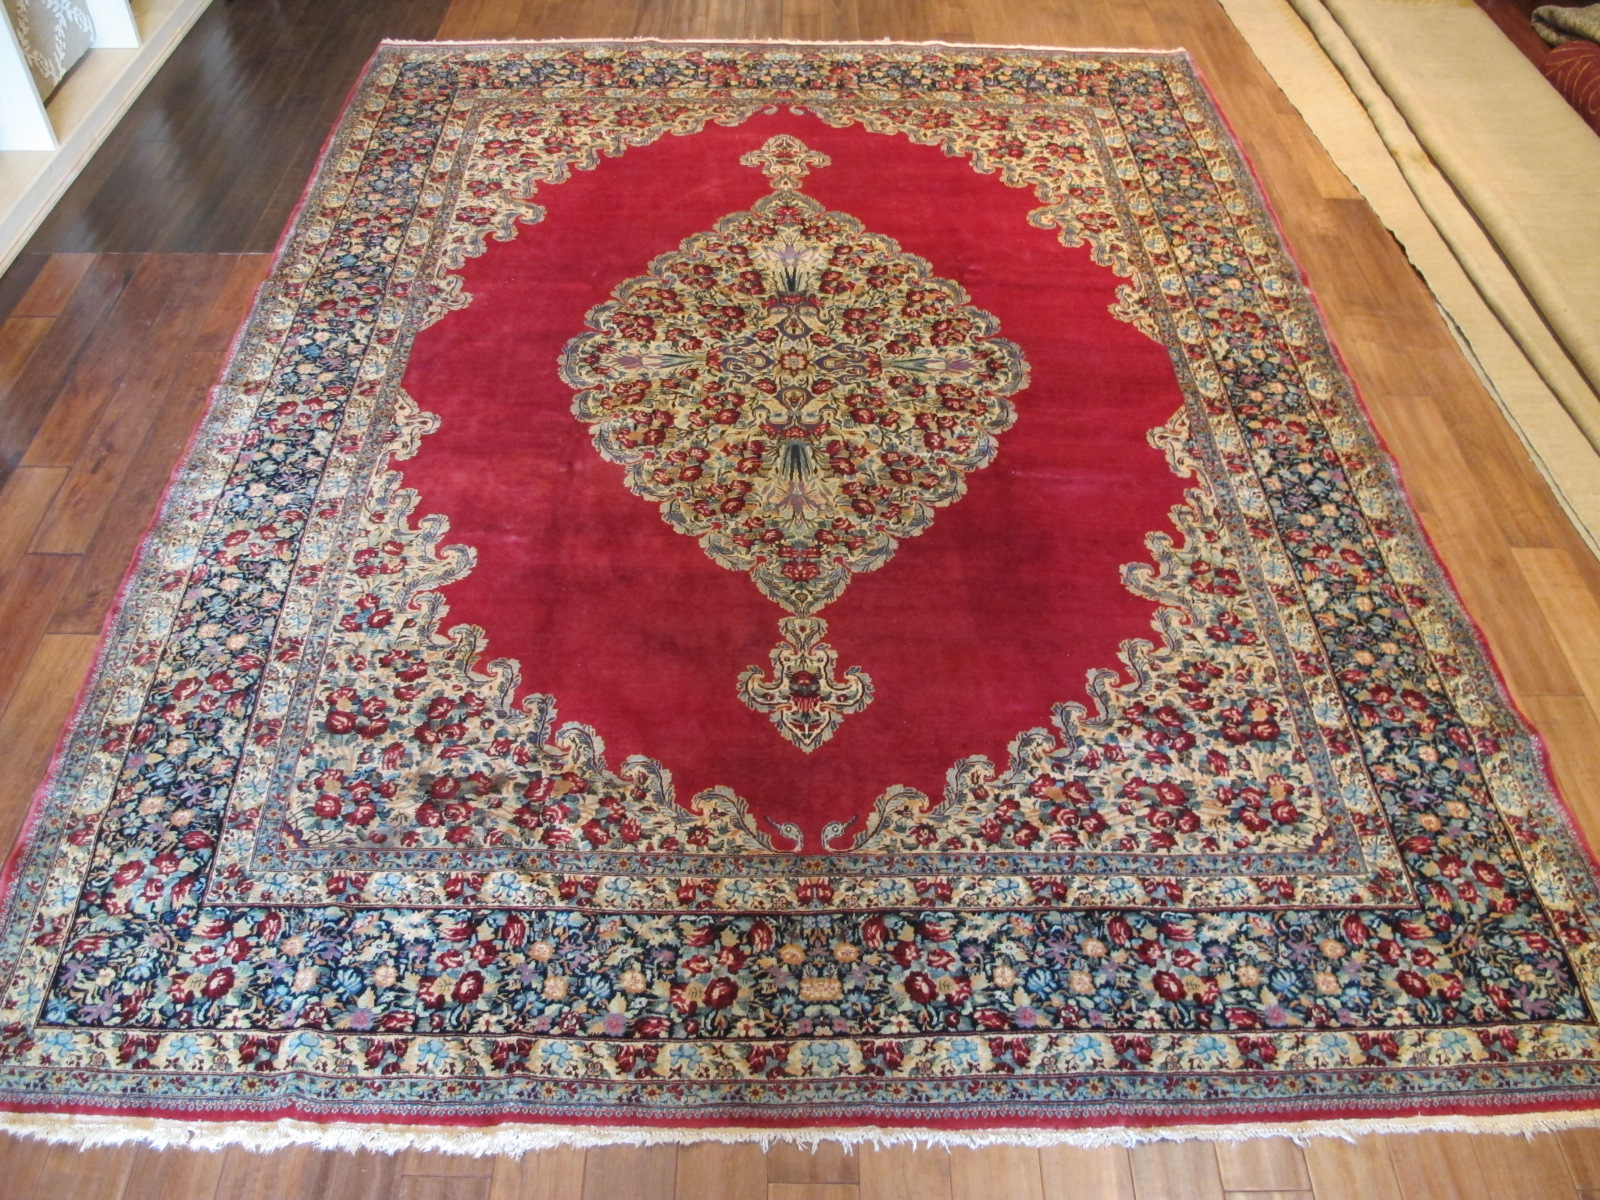 13028 semi-antique persian kerman rug 8,10 x 11,3